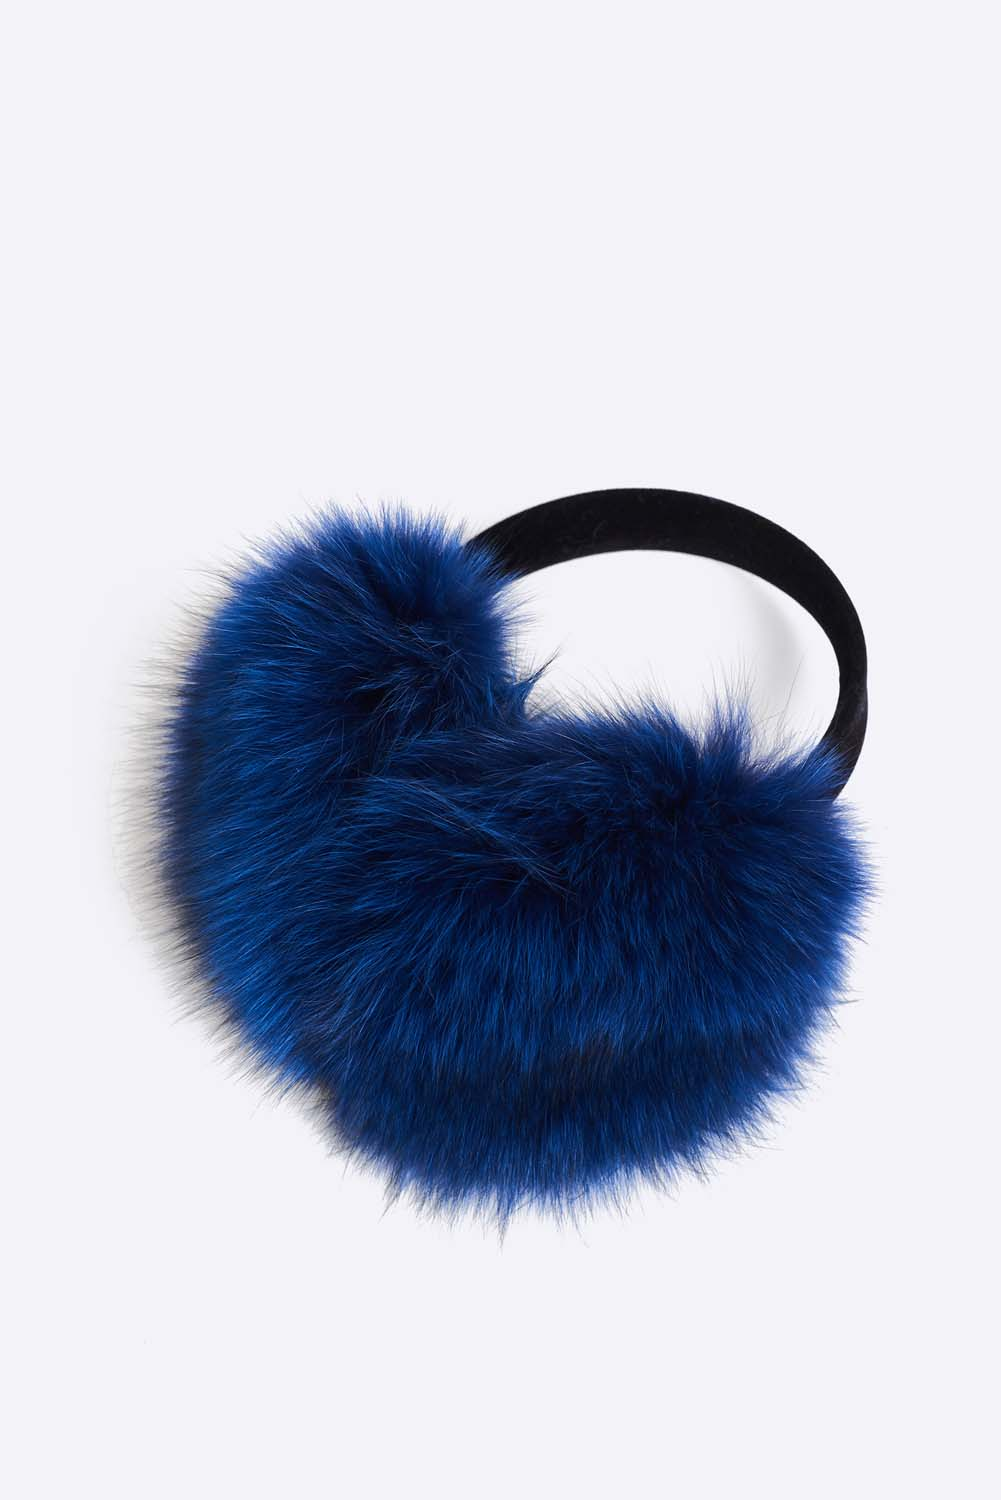 Classic upcycled fox fur earmuffs. Ultra soft and warm earmuffs. They have a polyester lining and velvet trim. Cut, dyed and stitched by hand. Hand made in Montreal.